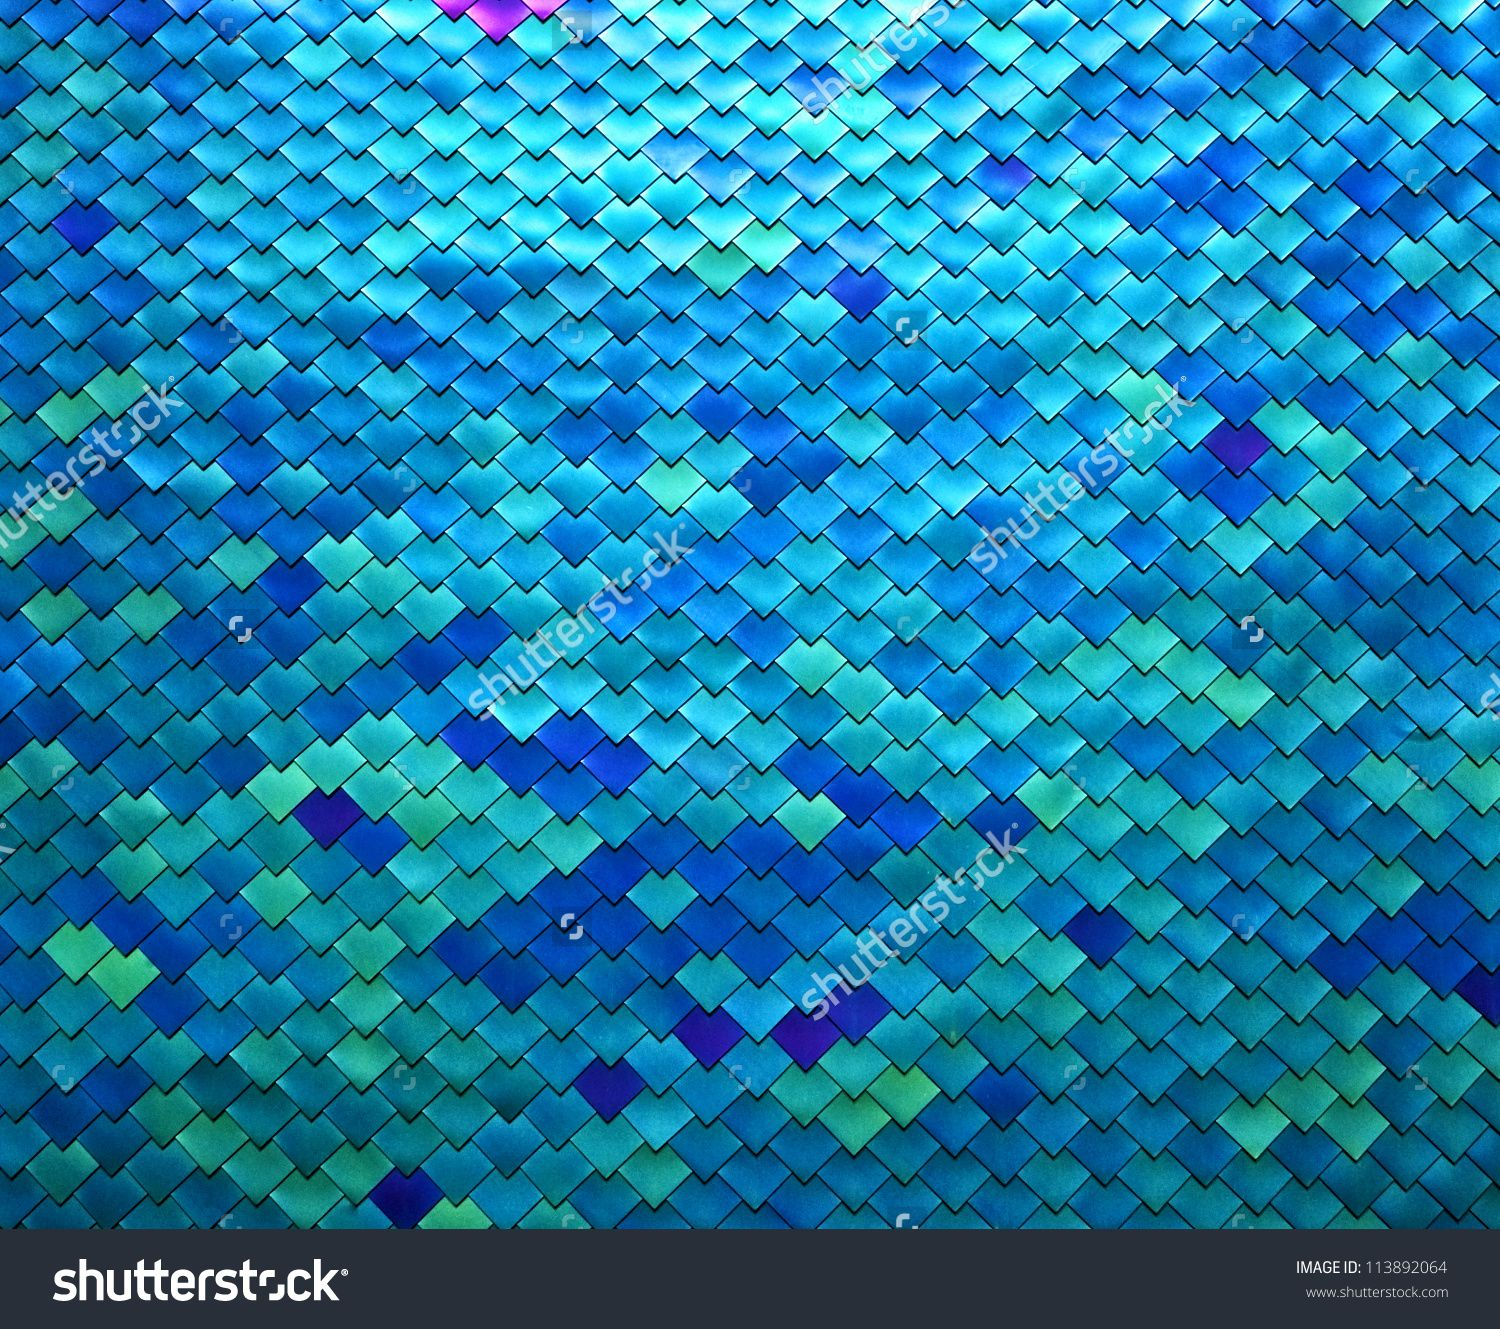 Colorful fish scales images galleries for Best fish scale